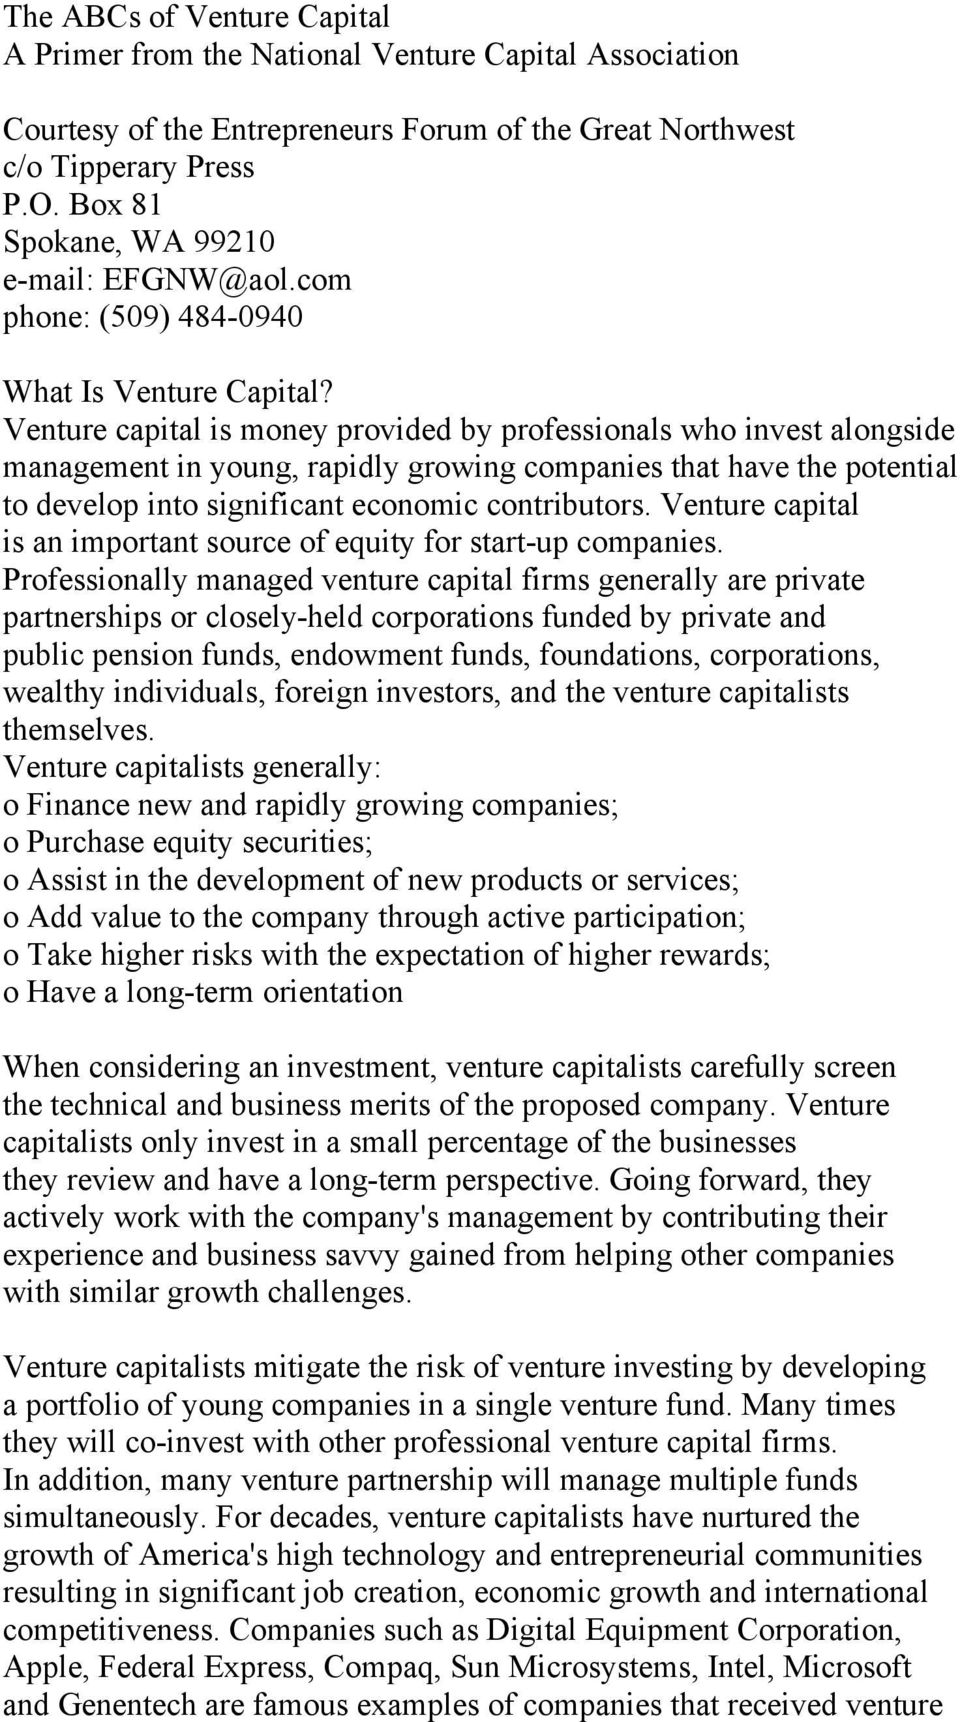 Venture capital is money provided by professionals who invest alongside management in young, rapidly growing companies that have the potential to develop into significant economic contributors.